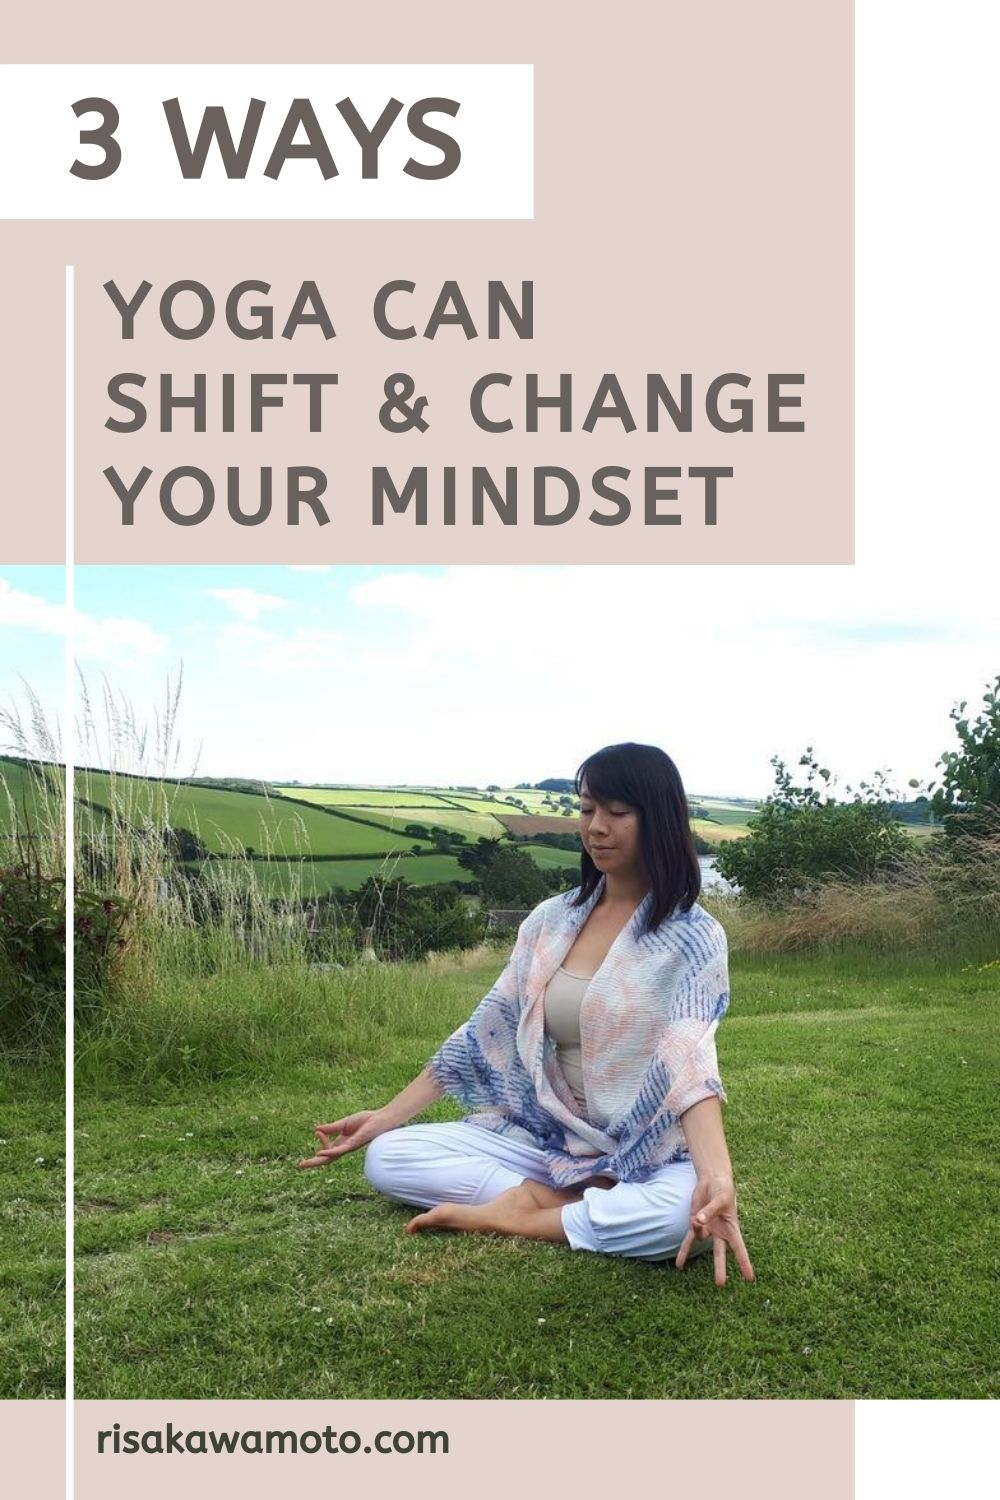 3 Ways Yoga Can Shift and Change Your Mindset